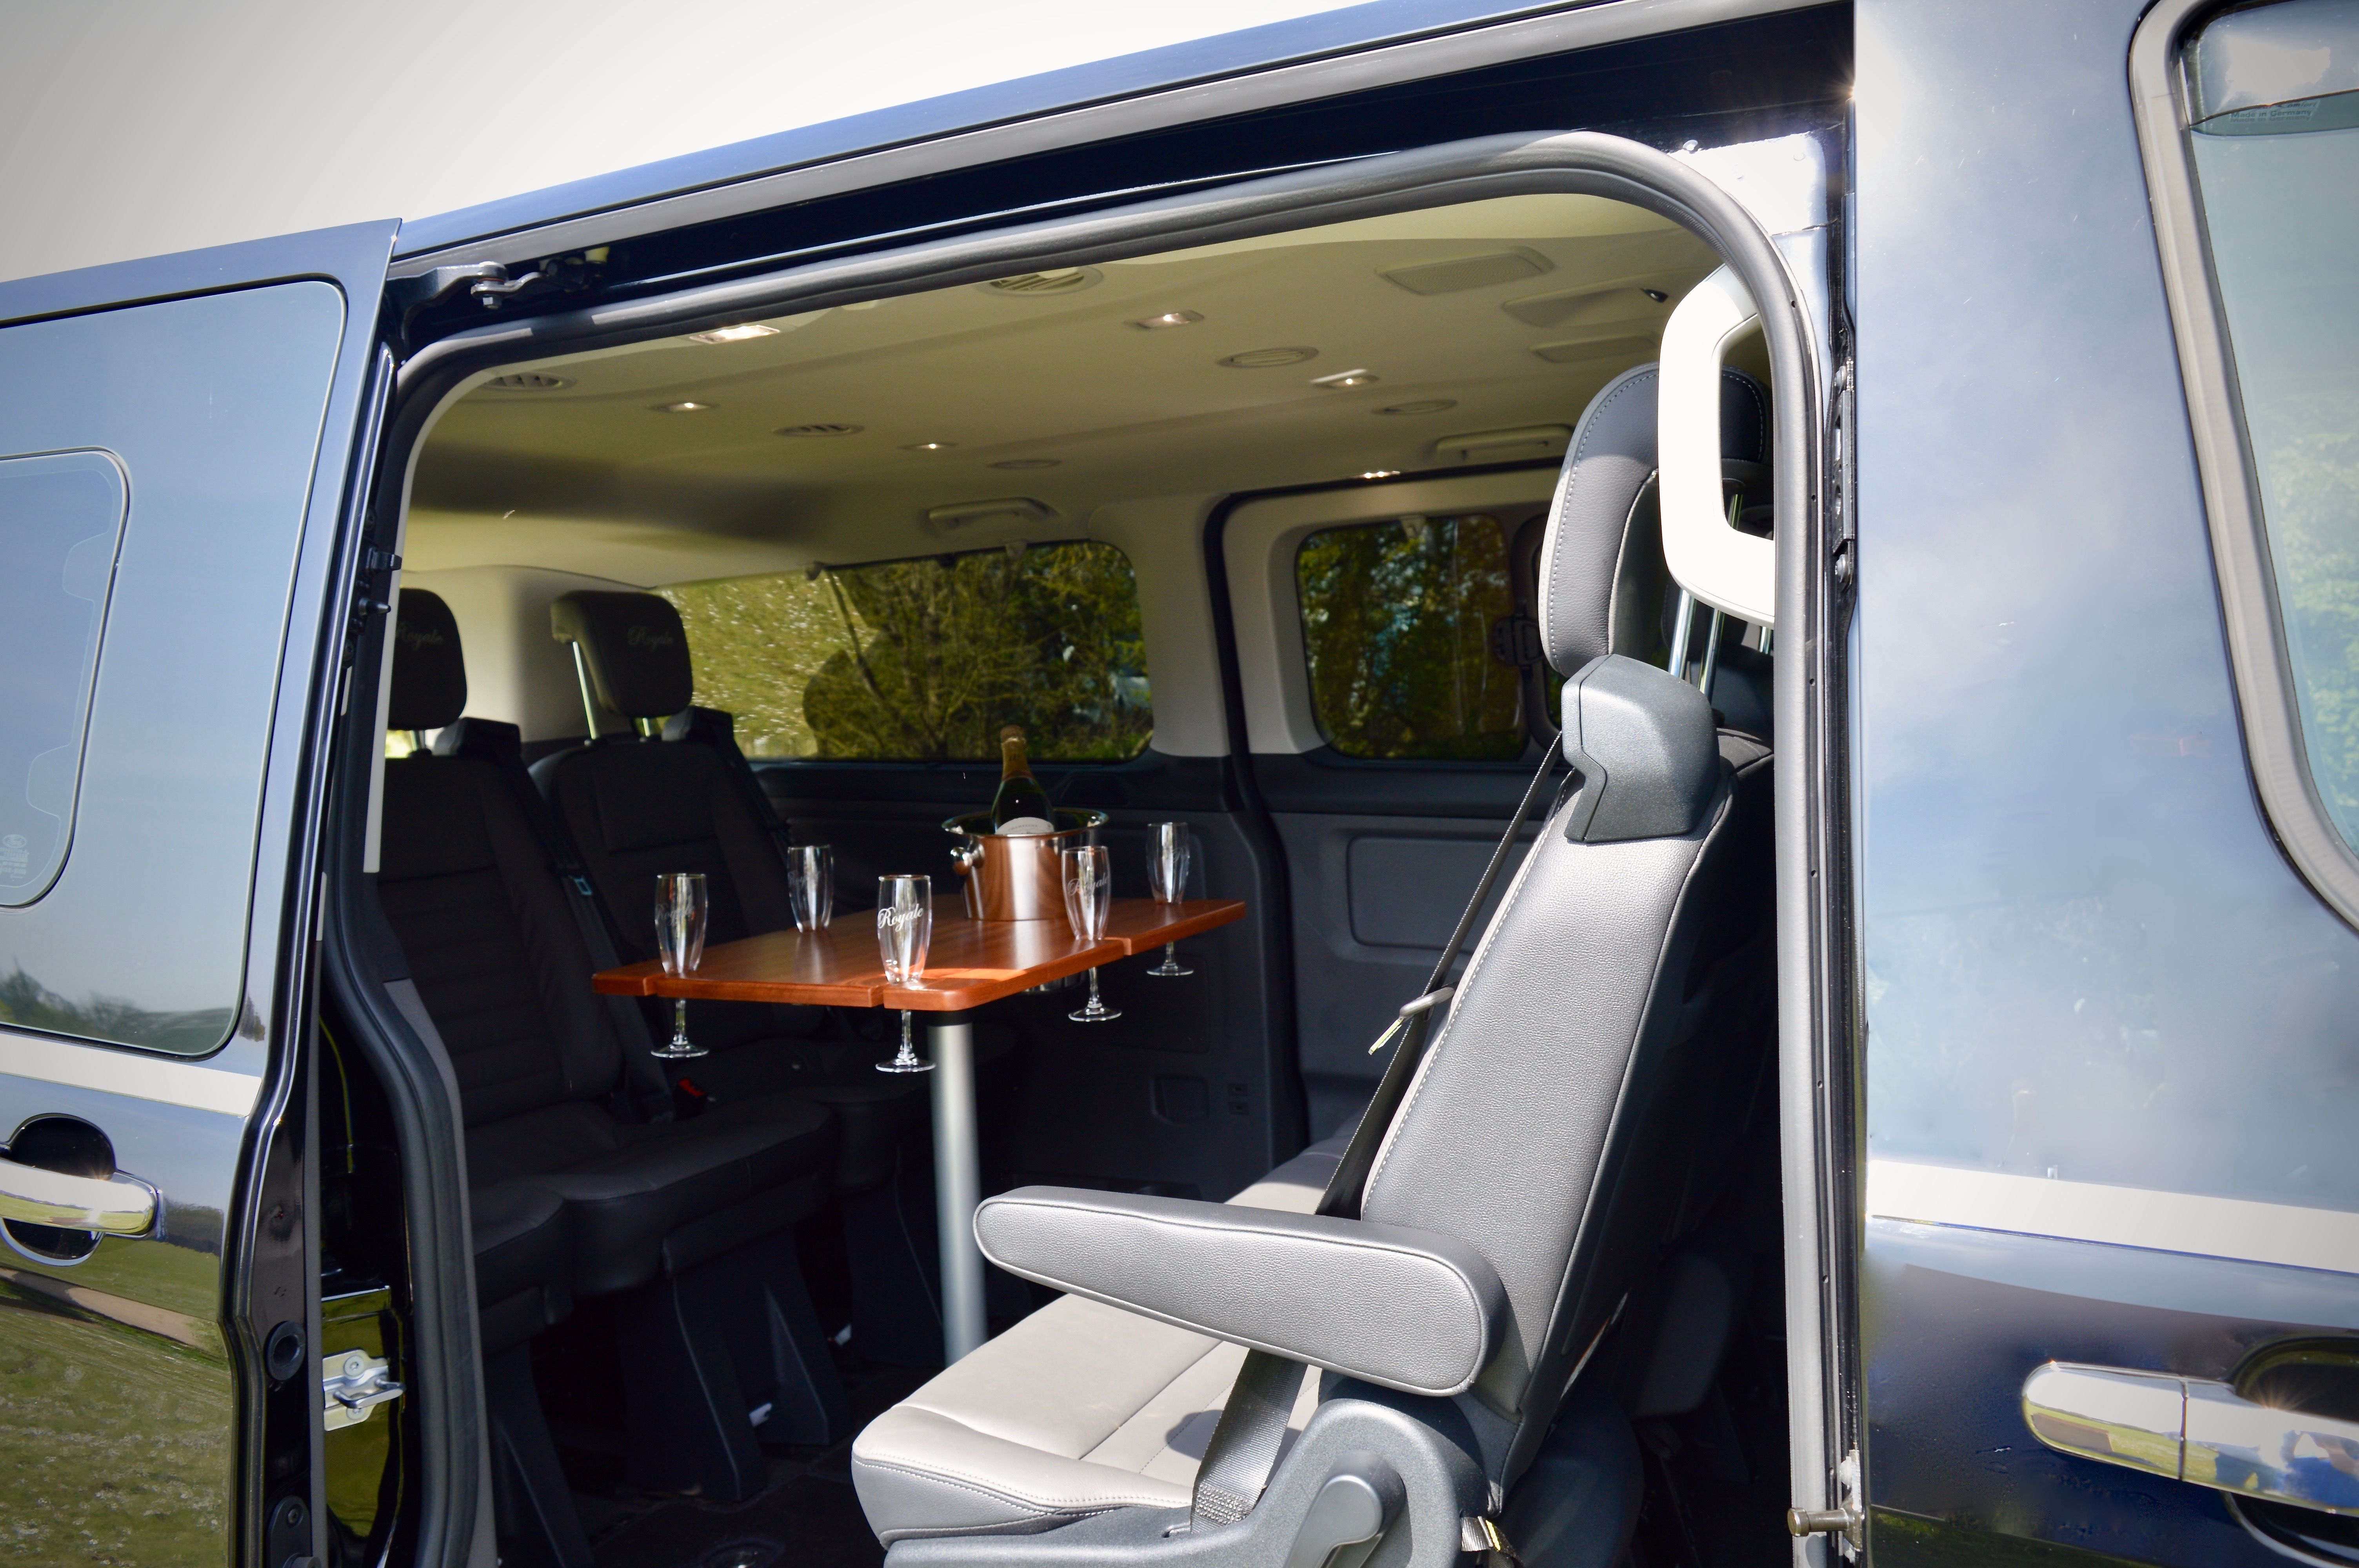 View from outside the 8 seater vehicle, showing the champagne table